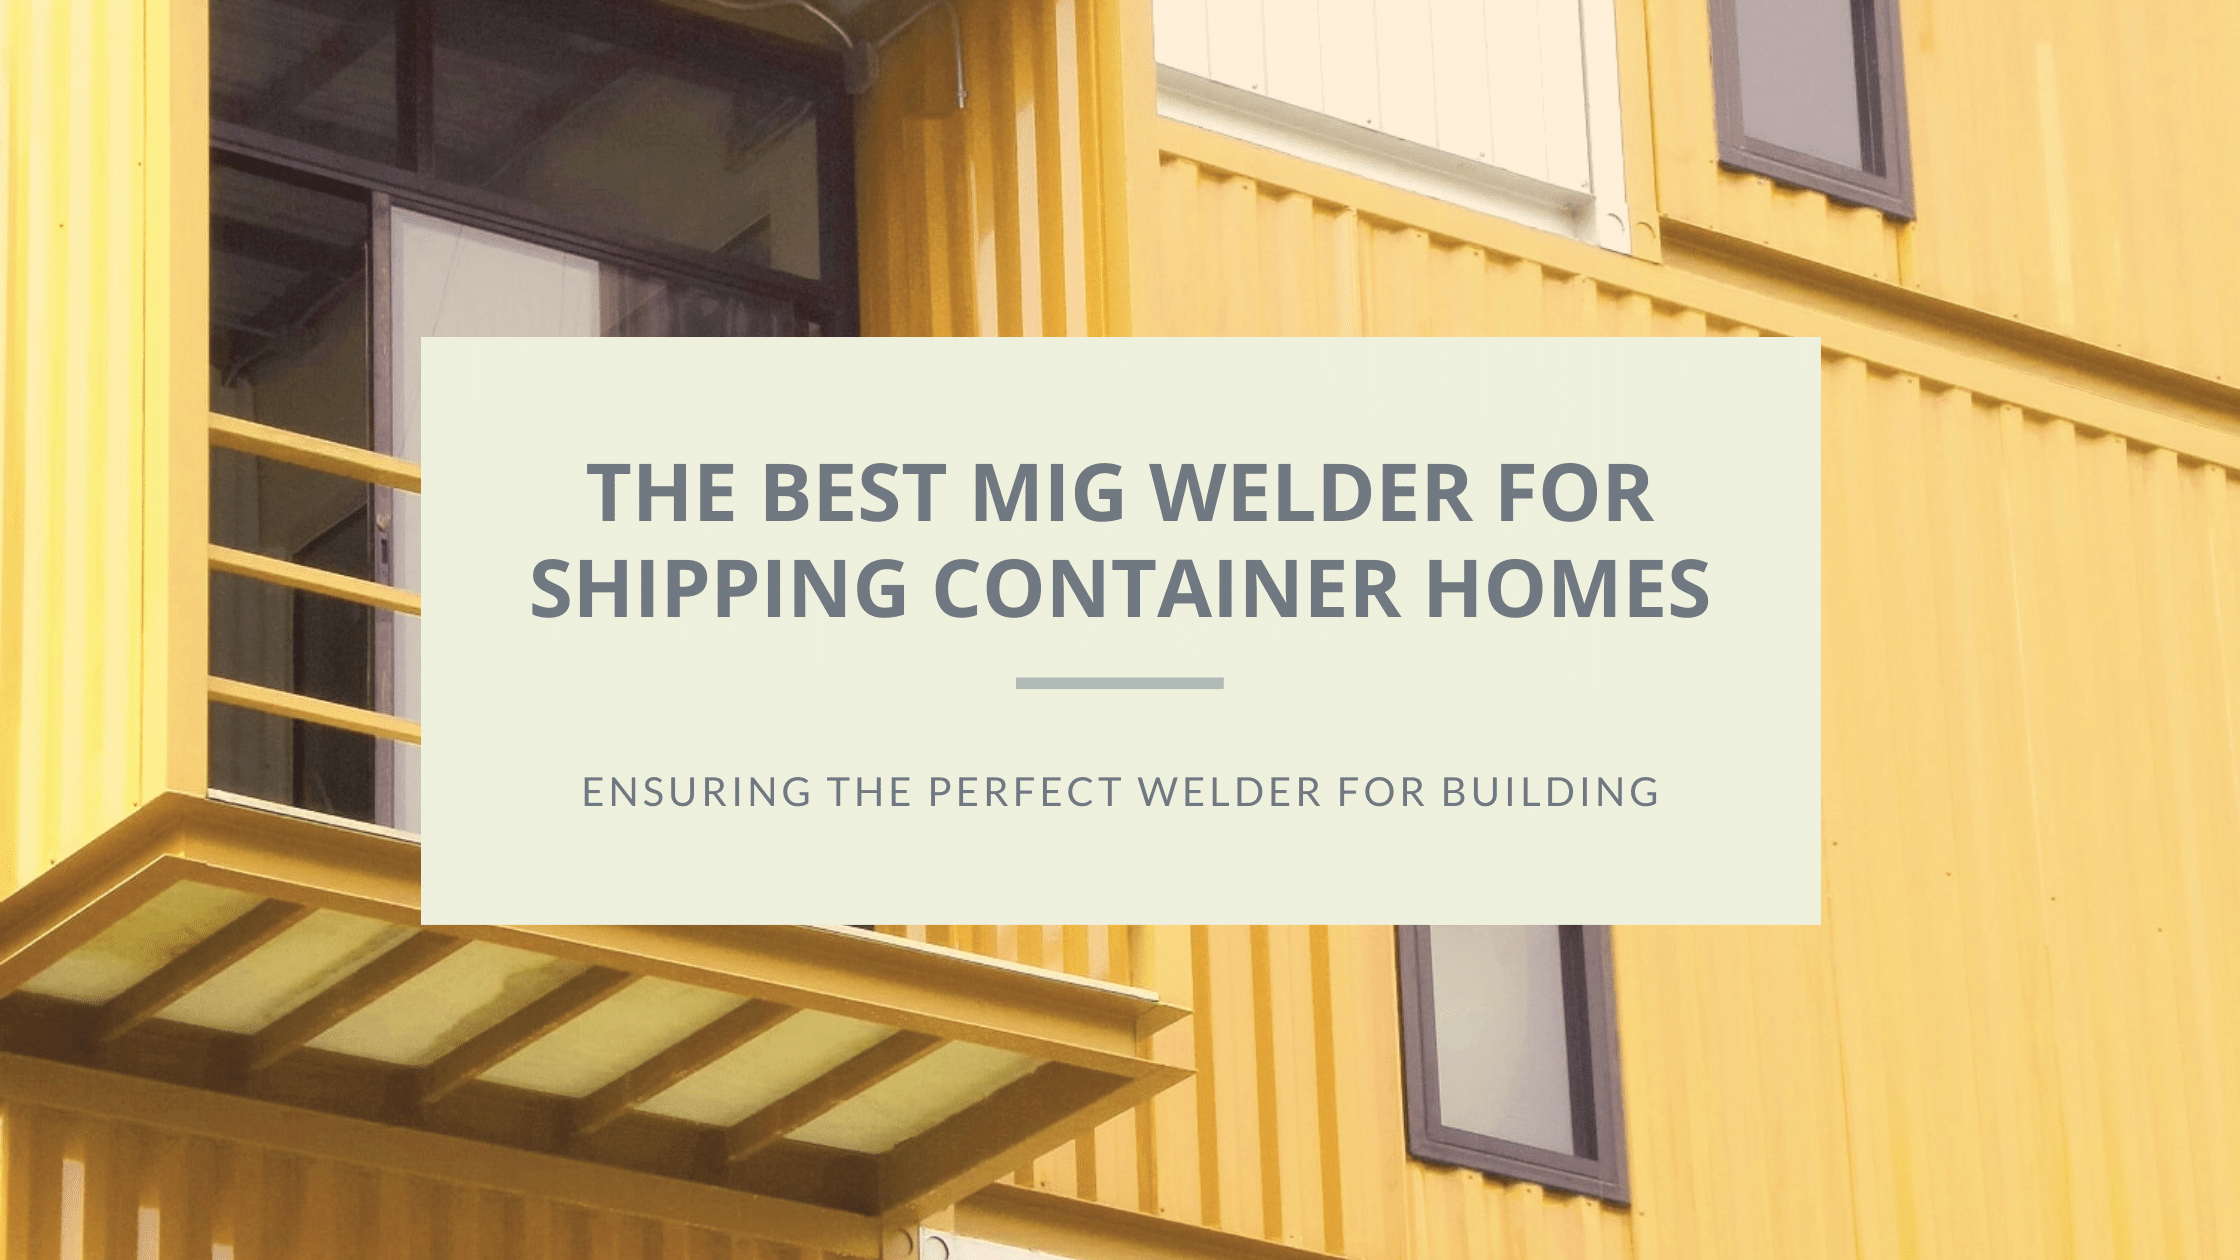 best mig welder featured